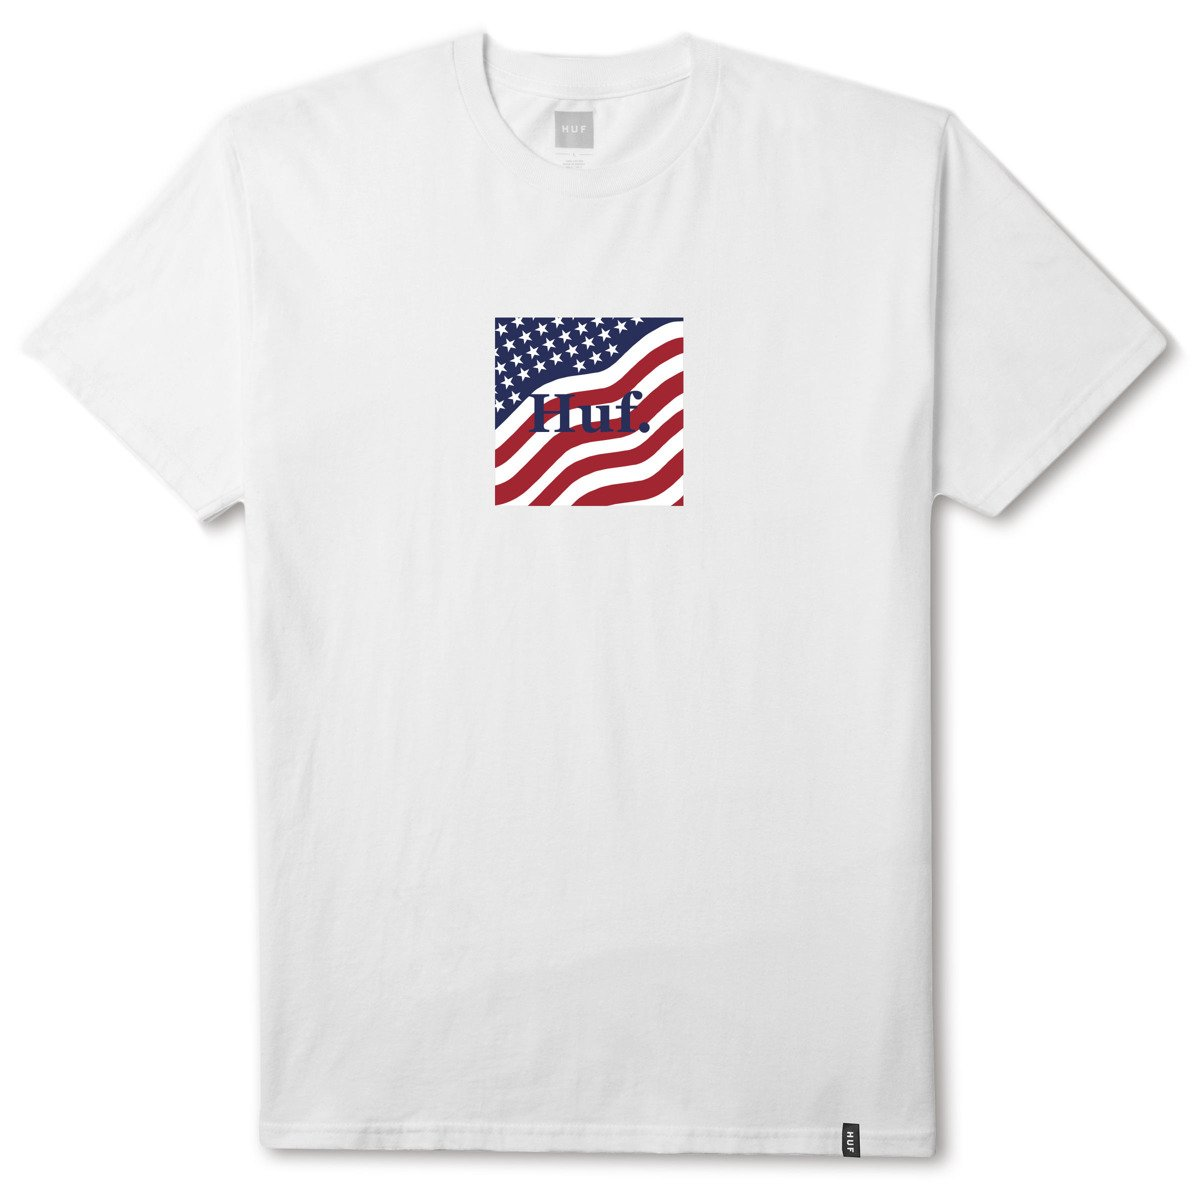 7141ba0138 huf apparel flag box logo white white | Clothes \ T-shirts \ T-Shirts  Brands \ HUF SALE \ Sale - 40% \ T-Shirts Odzież \ HUF \ collections 4th Of  July ...